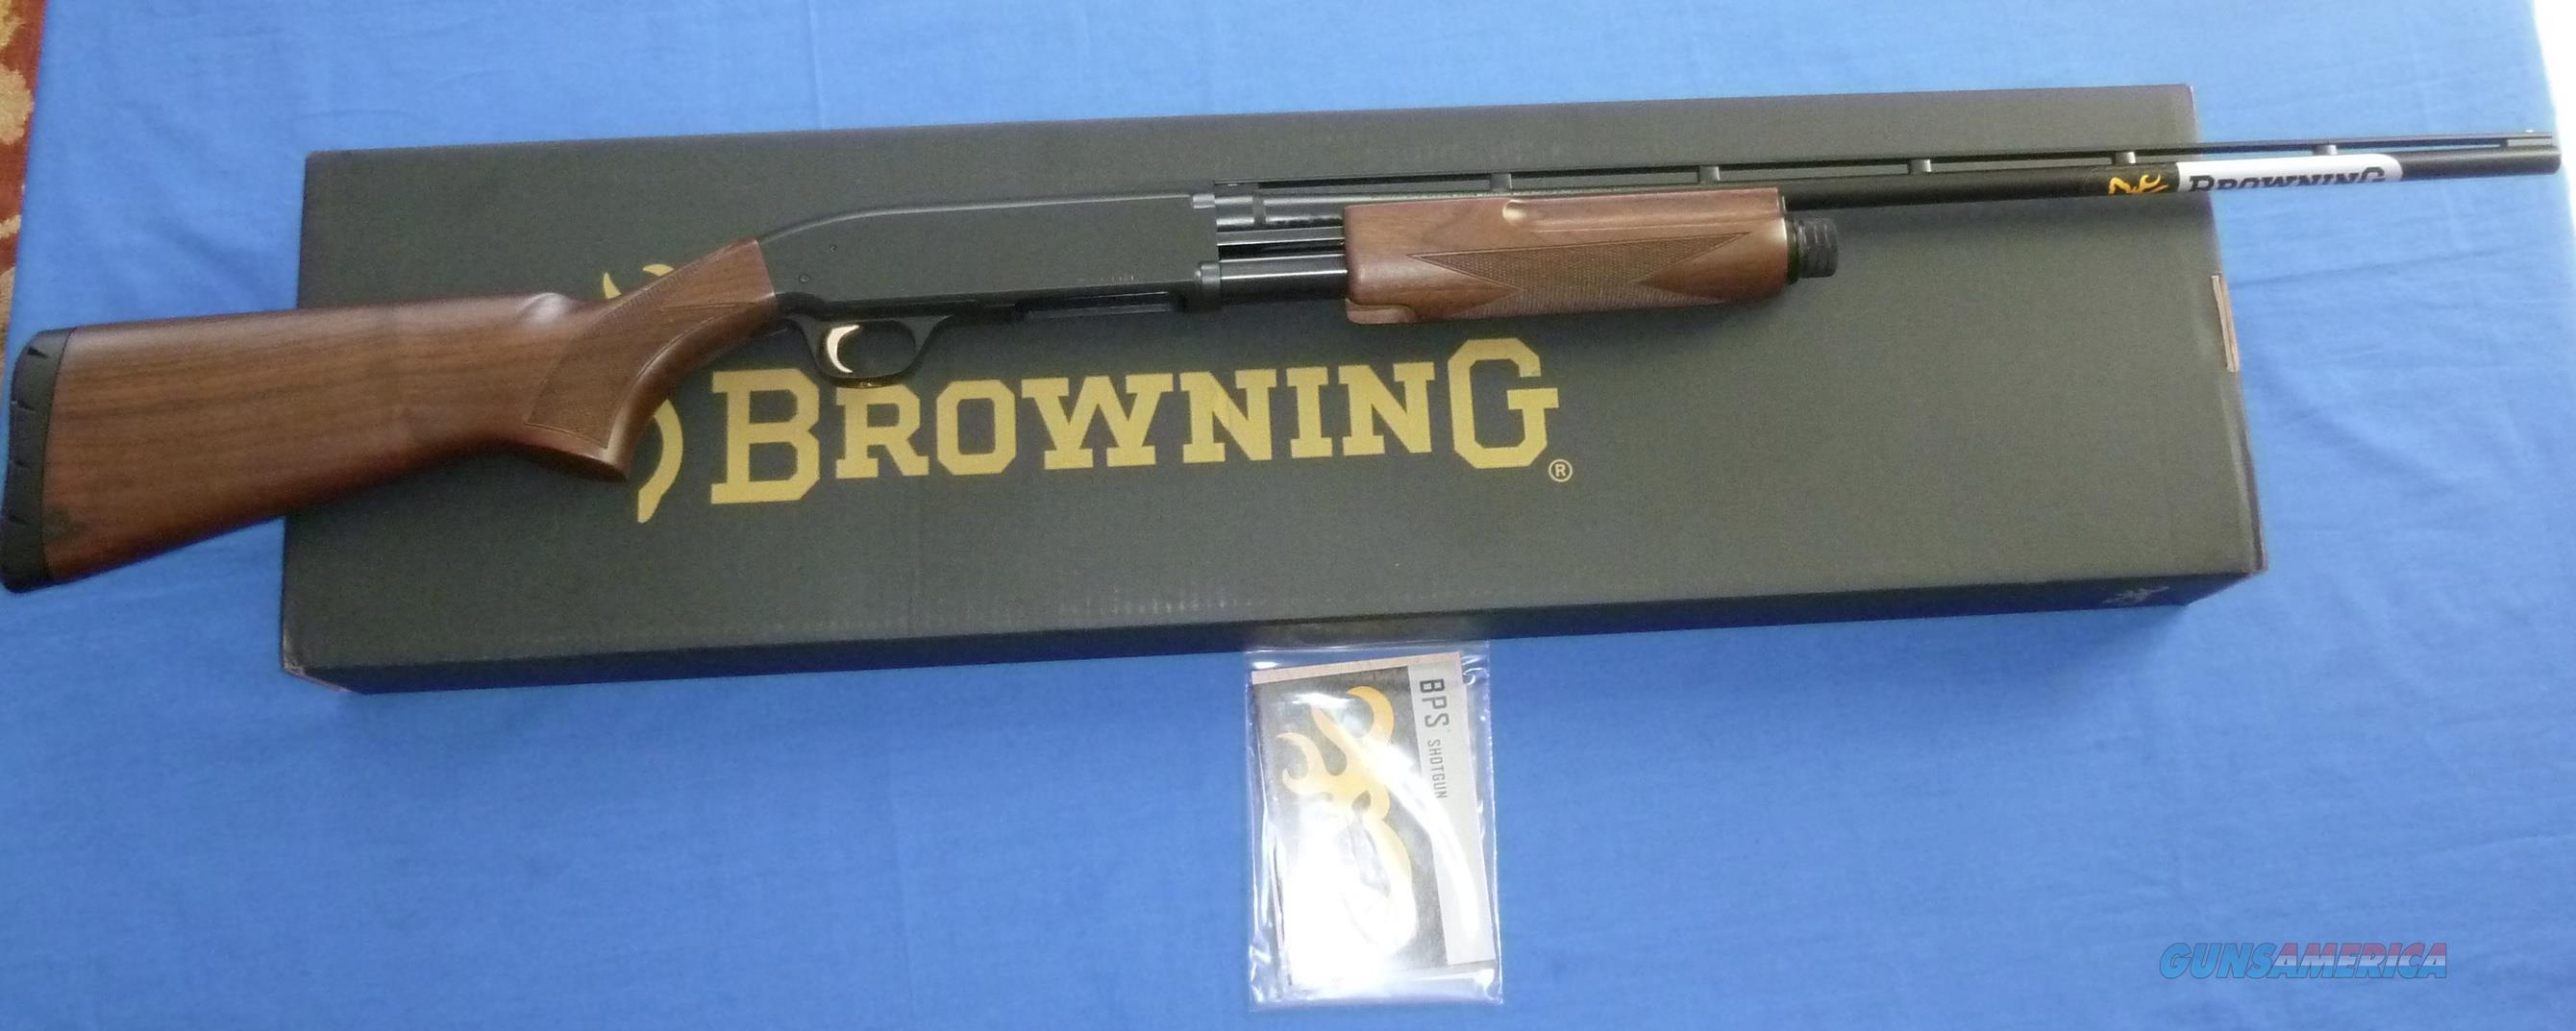 BROWNING BPS FIELD 410 GAUGE PUMP SHOTGUN  FREE SHIPPING AND NO CC FEES!  Guns > Shotguns > Browning Shotguns > Pump Action > Hunting